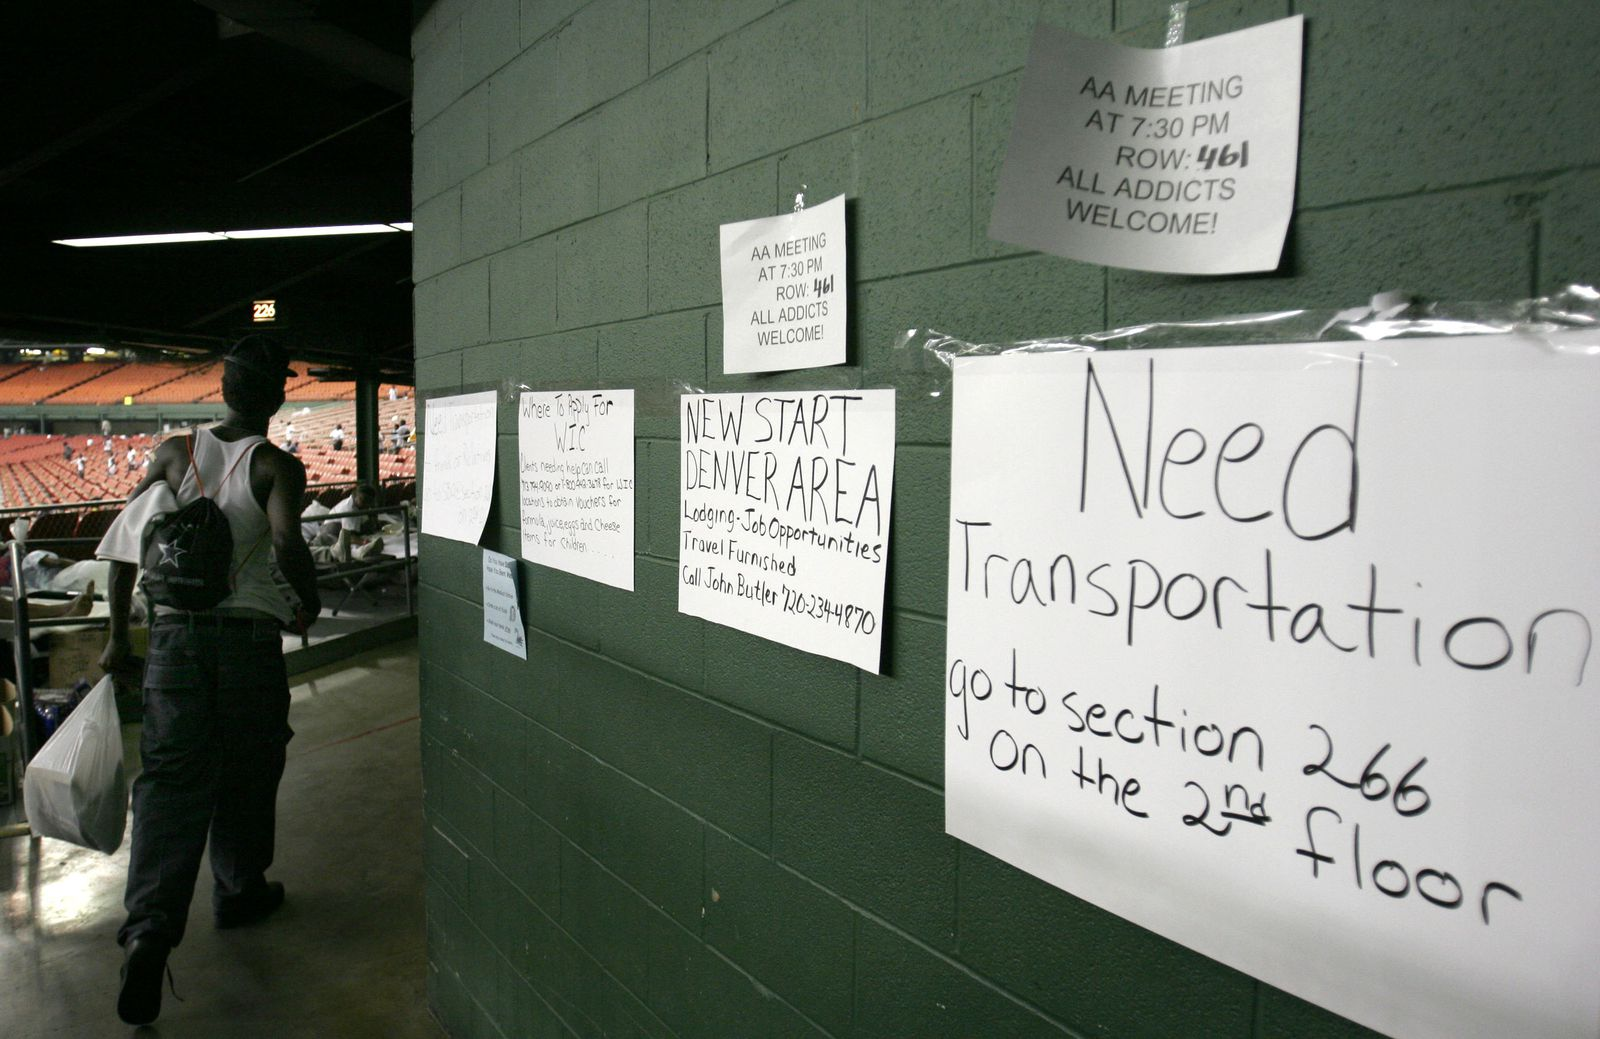 Signs posted at a stadium for events, including an AA meeting.